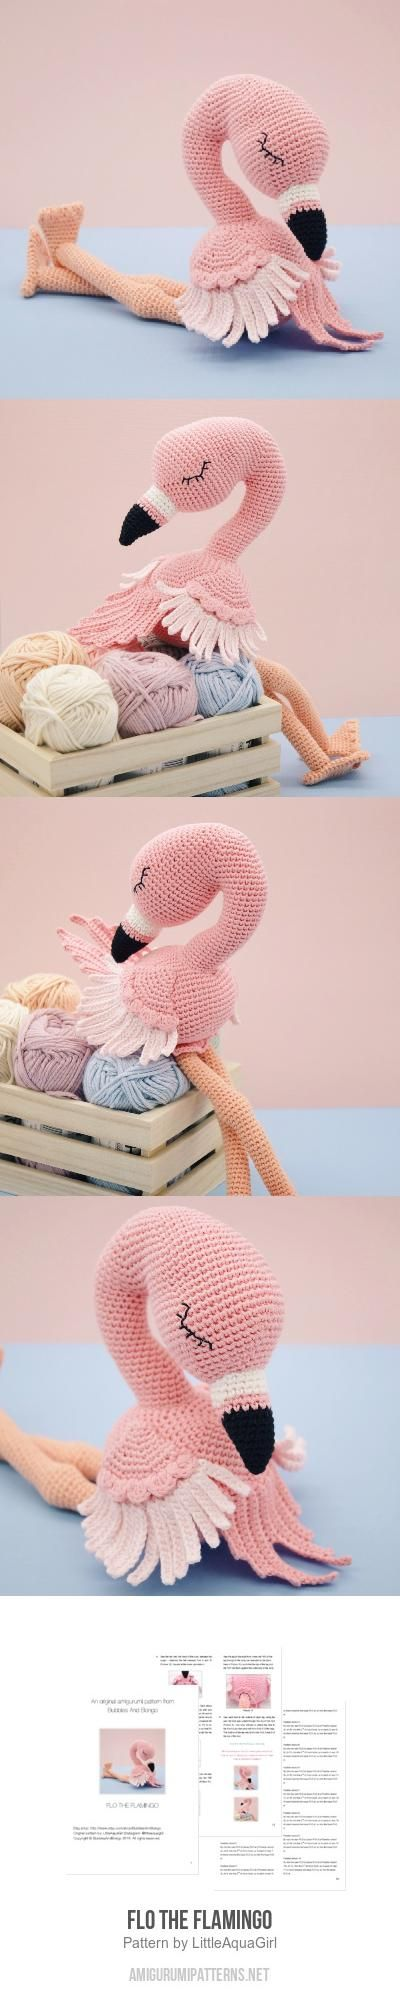 Flo the flamingo is extremely shy and is a bit of a daydreamer...she loves having a good giggle with her close friends! Flo the flamingo pattern by LittleAquaGirl: http://www.amigurumipatterns.net/shop/LittleAquaGirl/Flo-the-Flamingo/